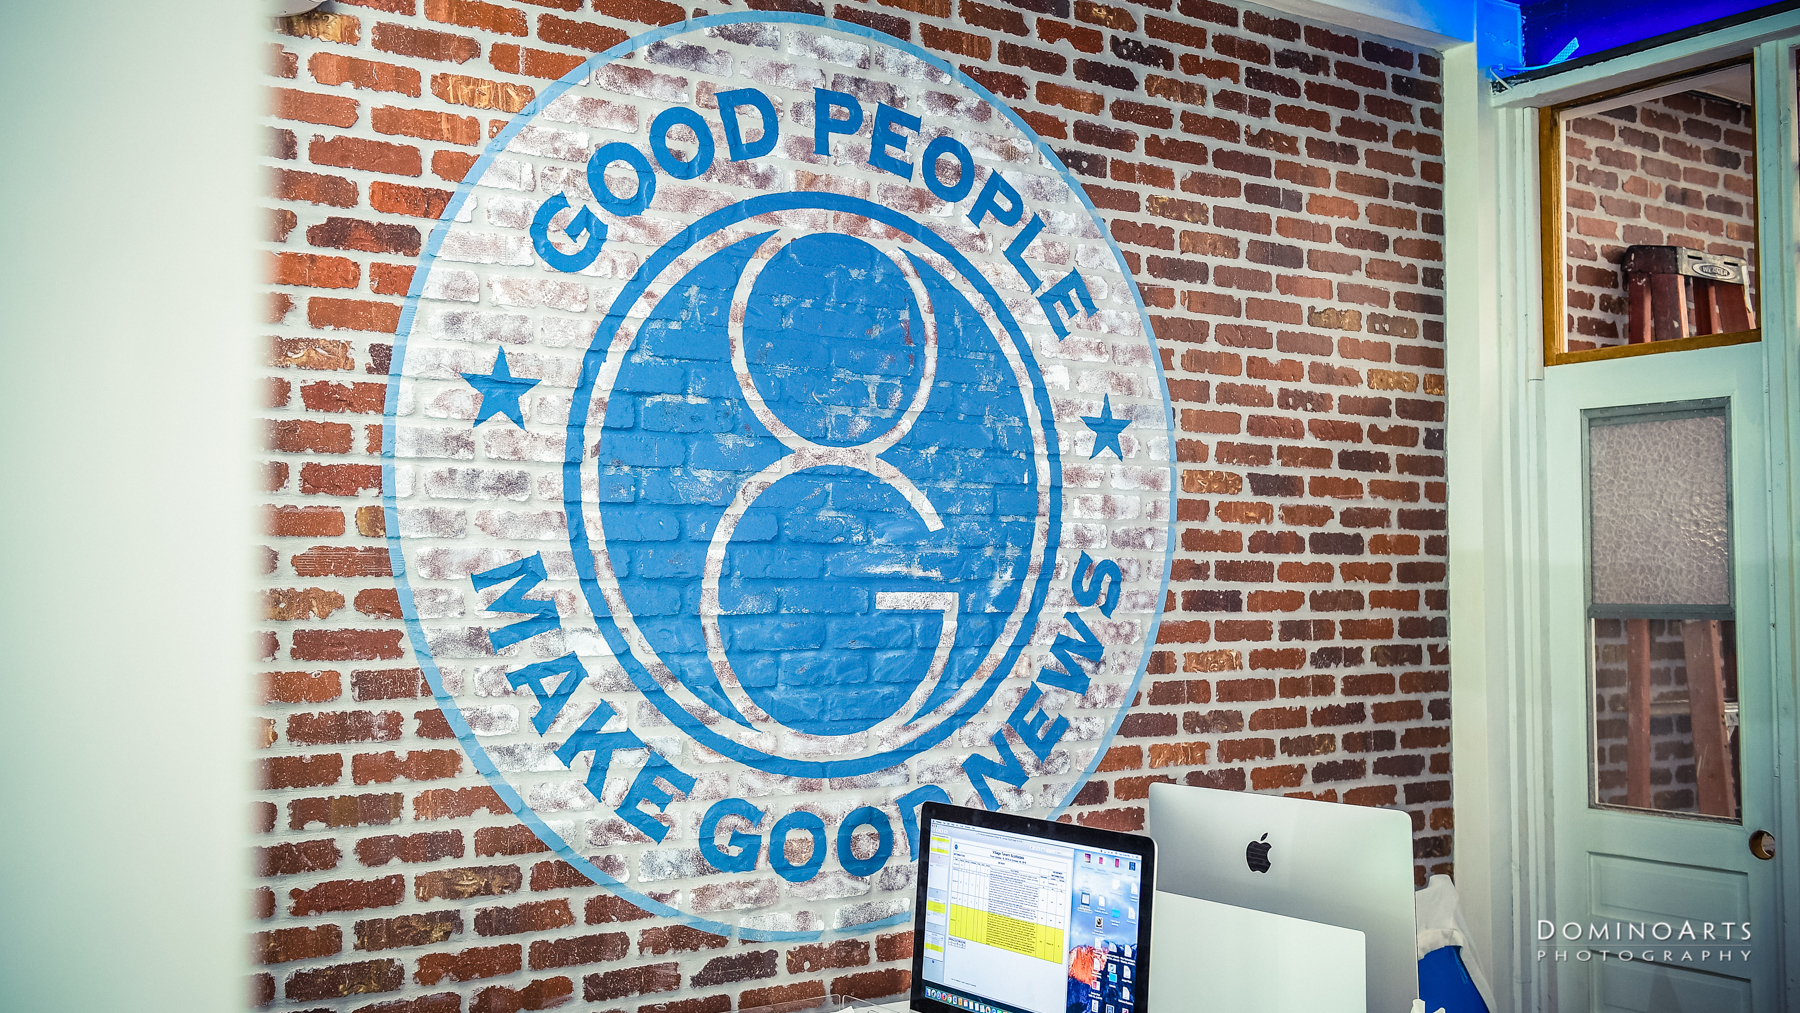 O'Connell & Goldberg Public Relations - Good people make good news